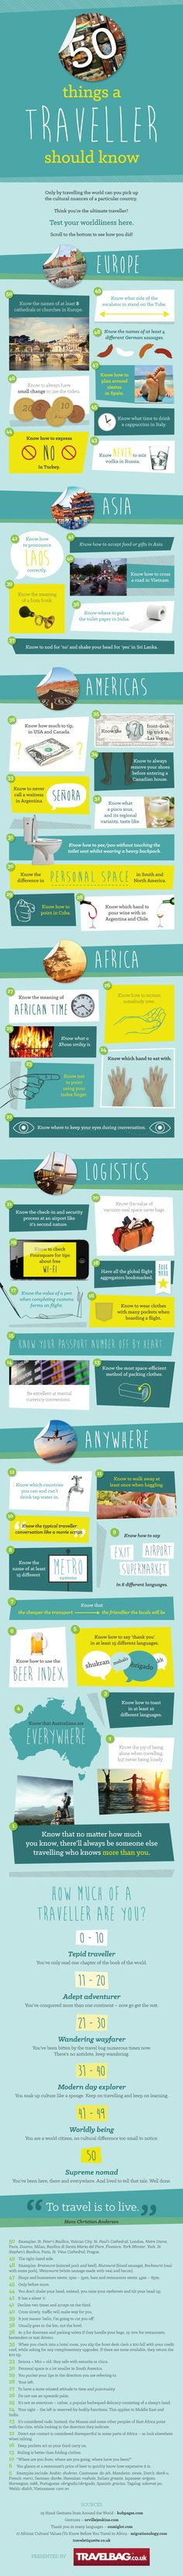 50 Things Every Traveler Should Know